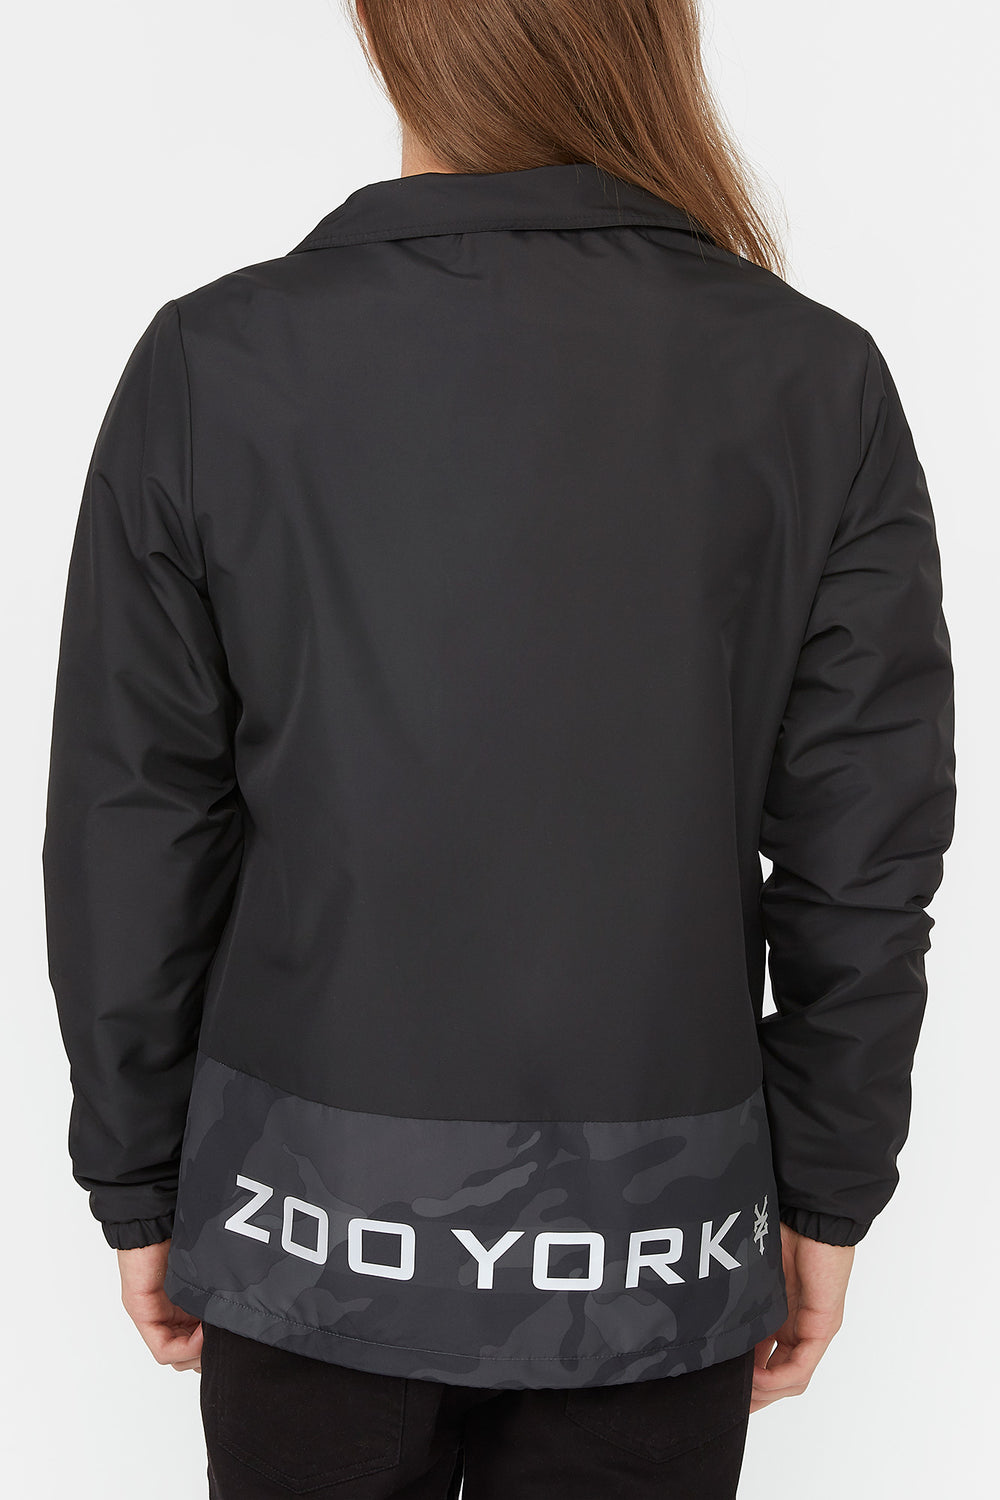 Zoo York Mens Bottom Panel Coach Jacket Black